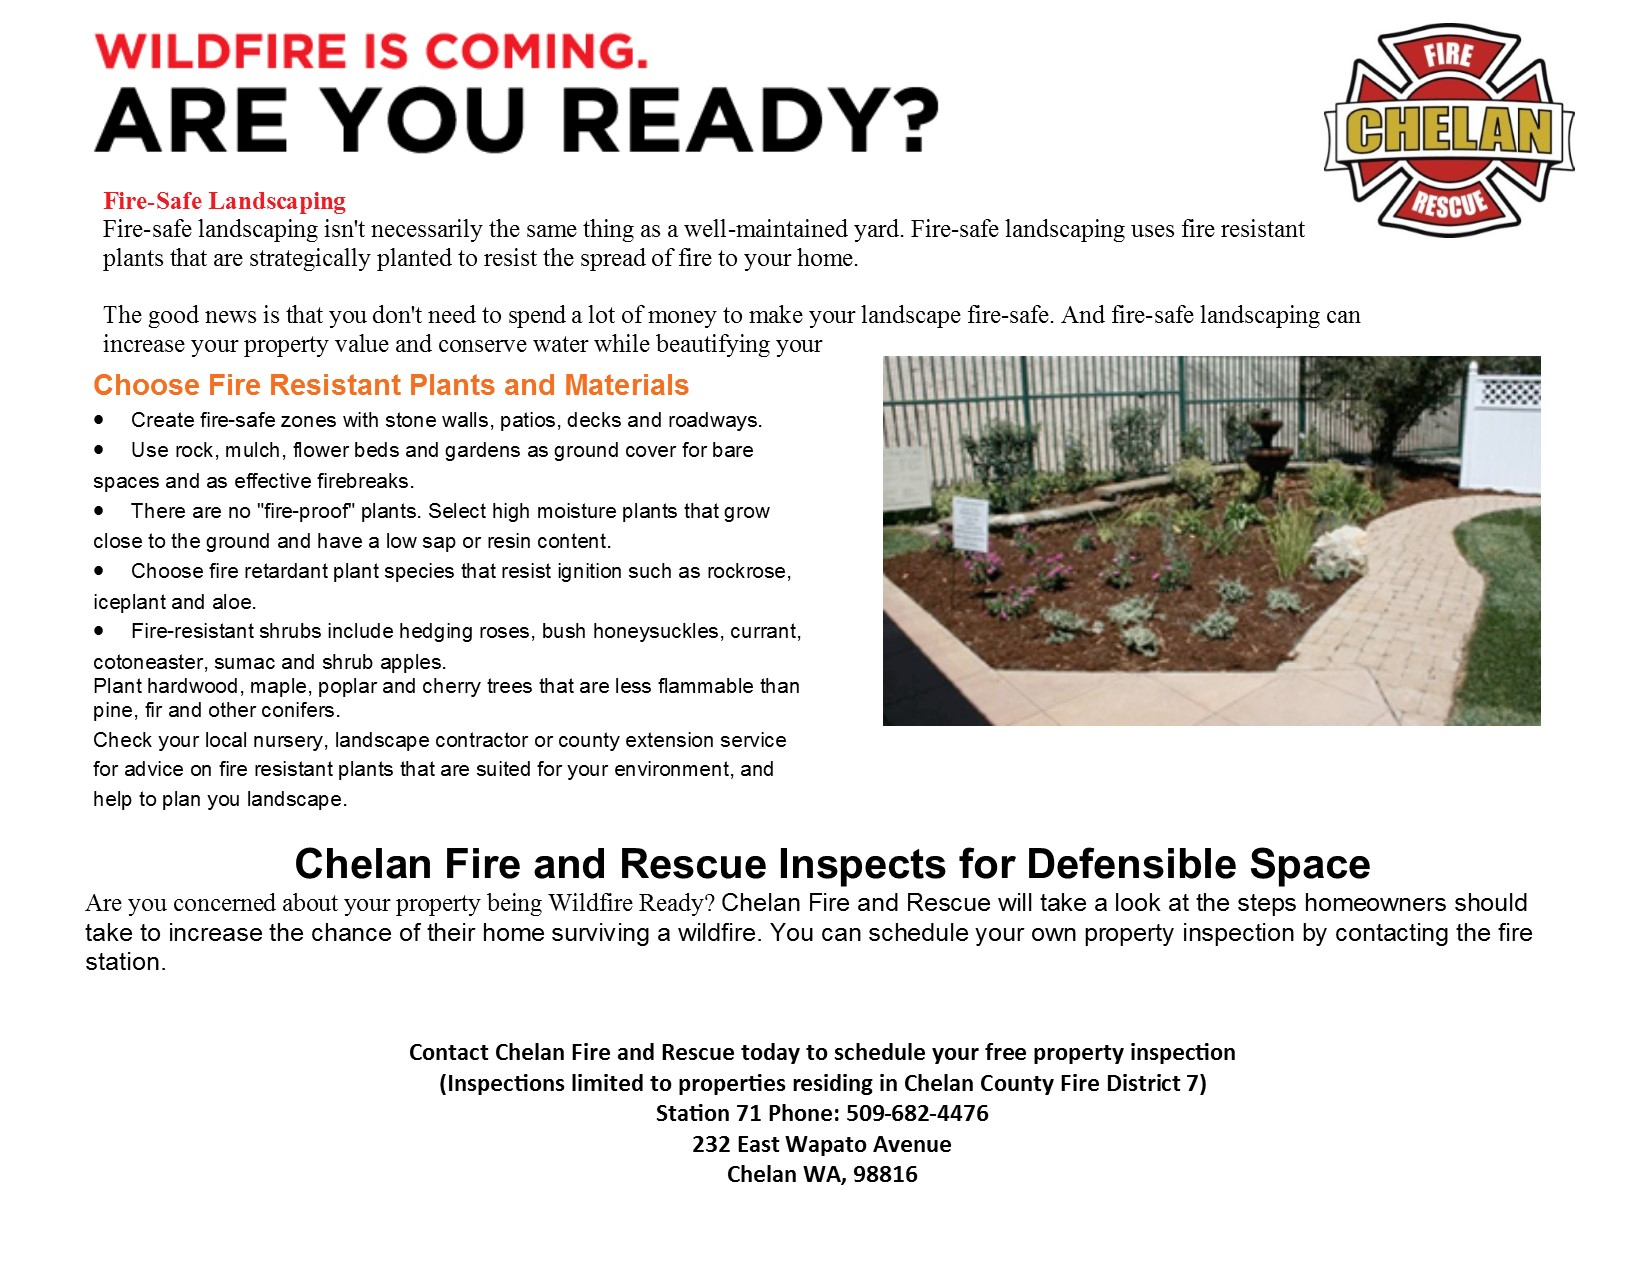 cfr_wildlfire_defensible_space_fire_safe_landscaping